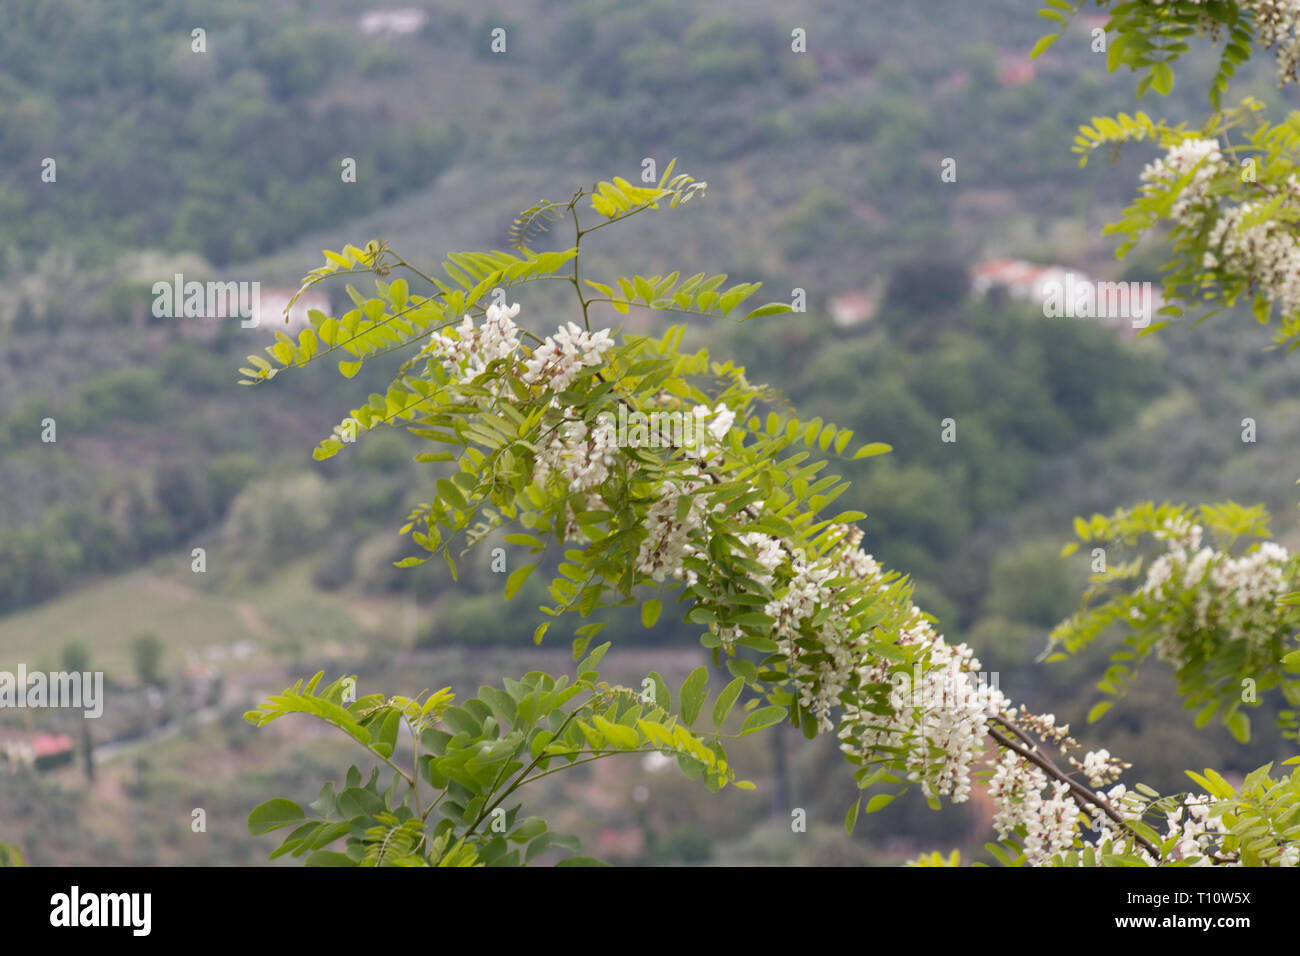 The view of white acacia flowering branch. Abundant flowering acacia branch of Robinia pseudoacacia. - Stock Image